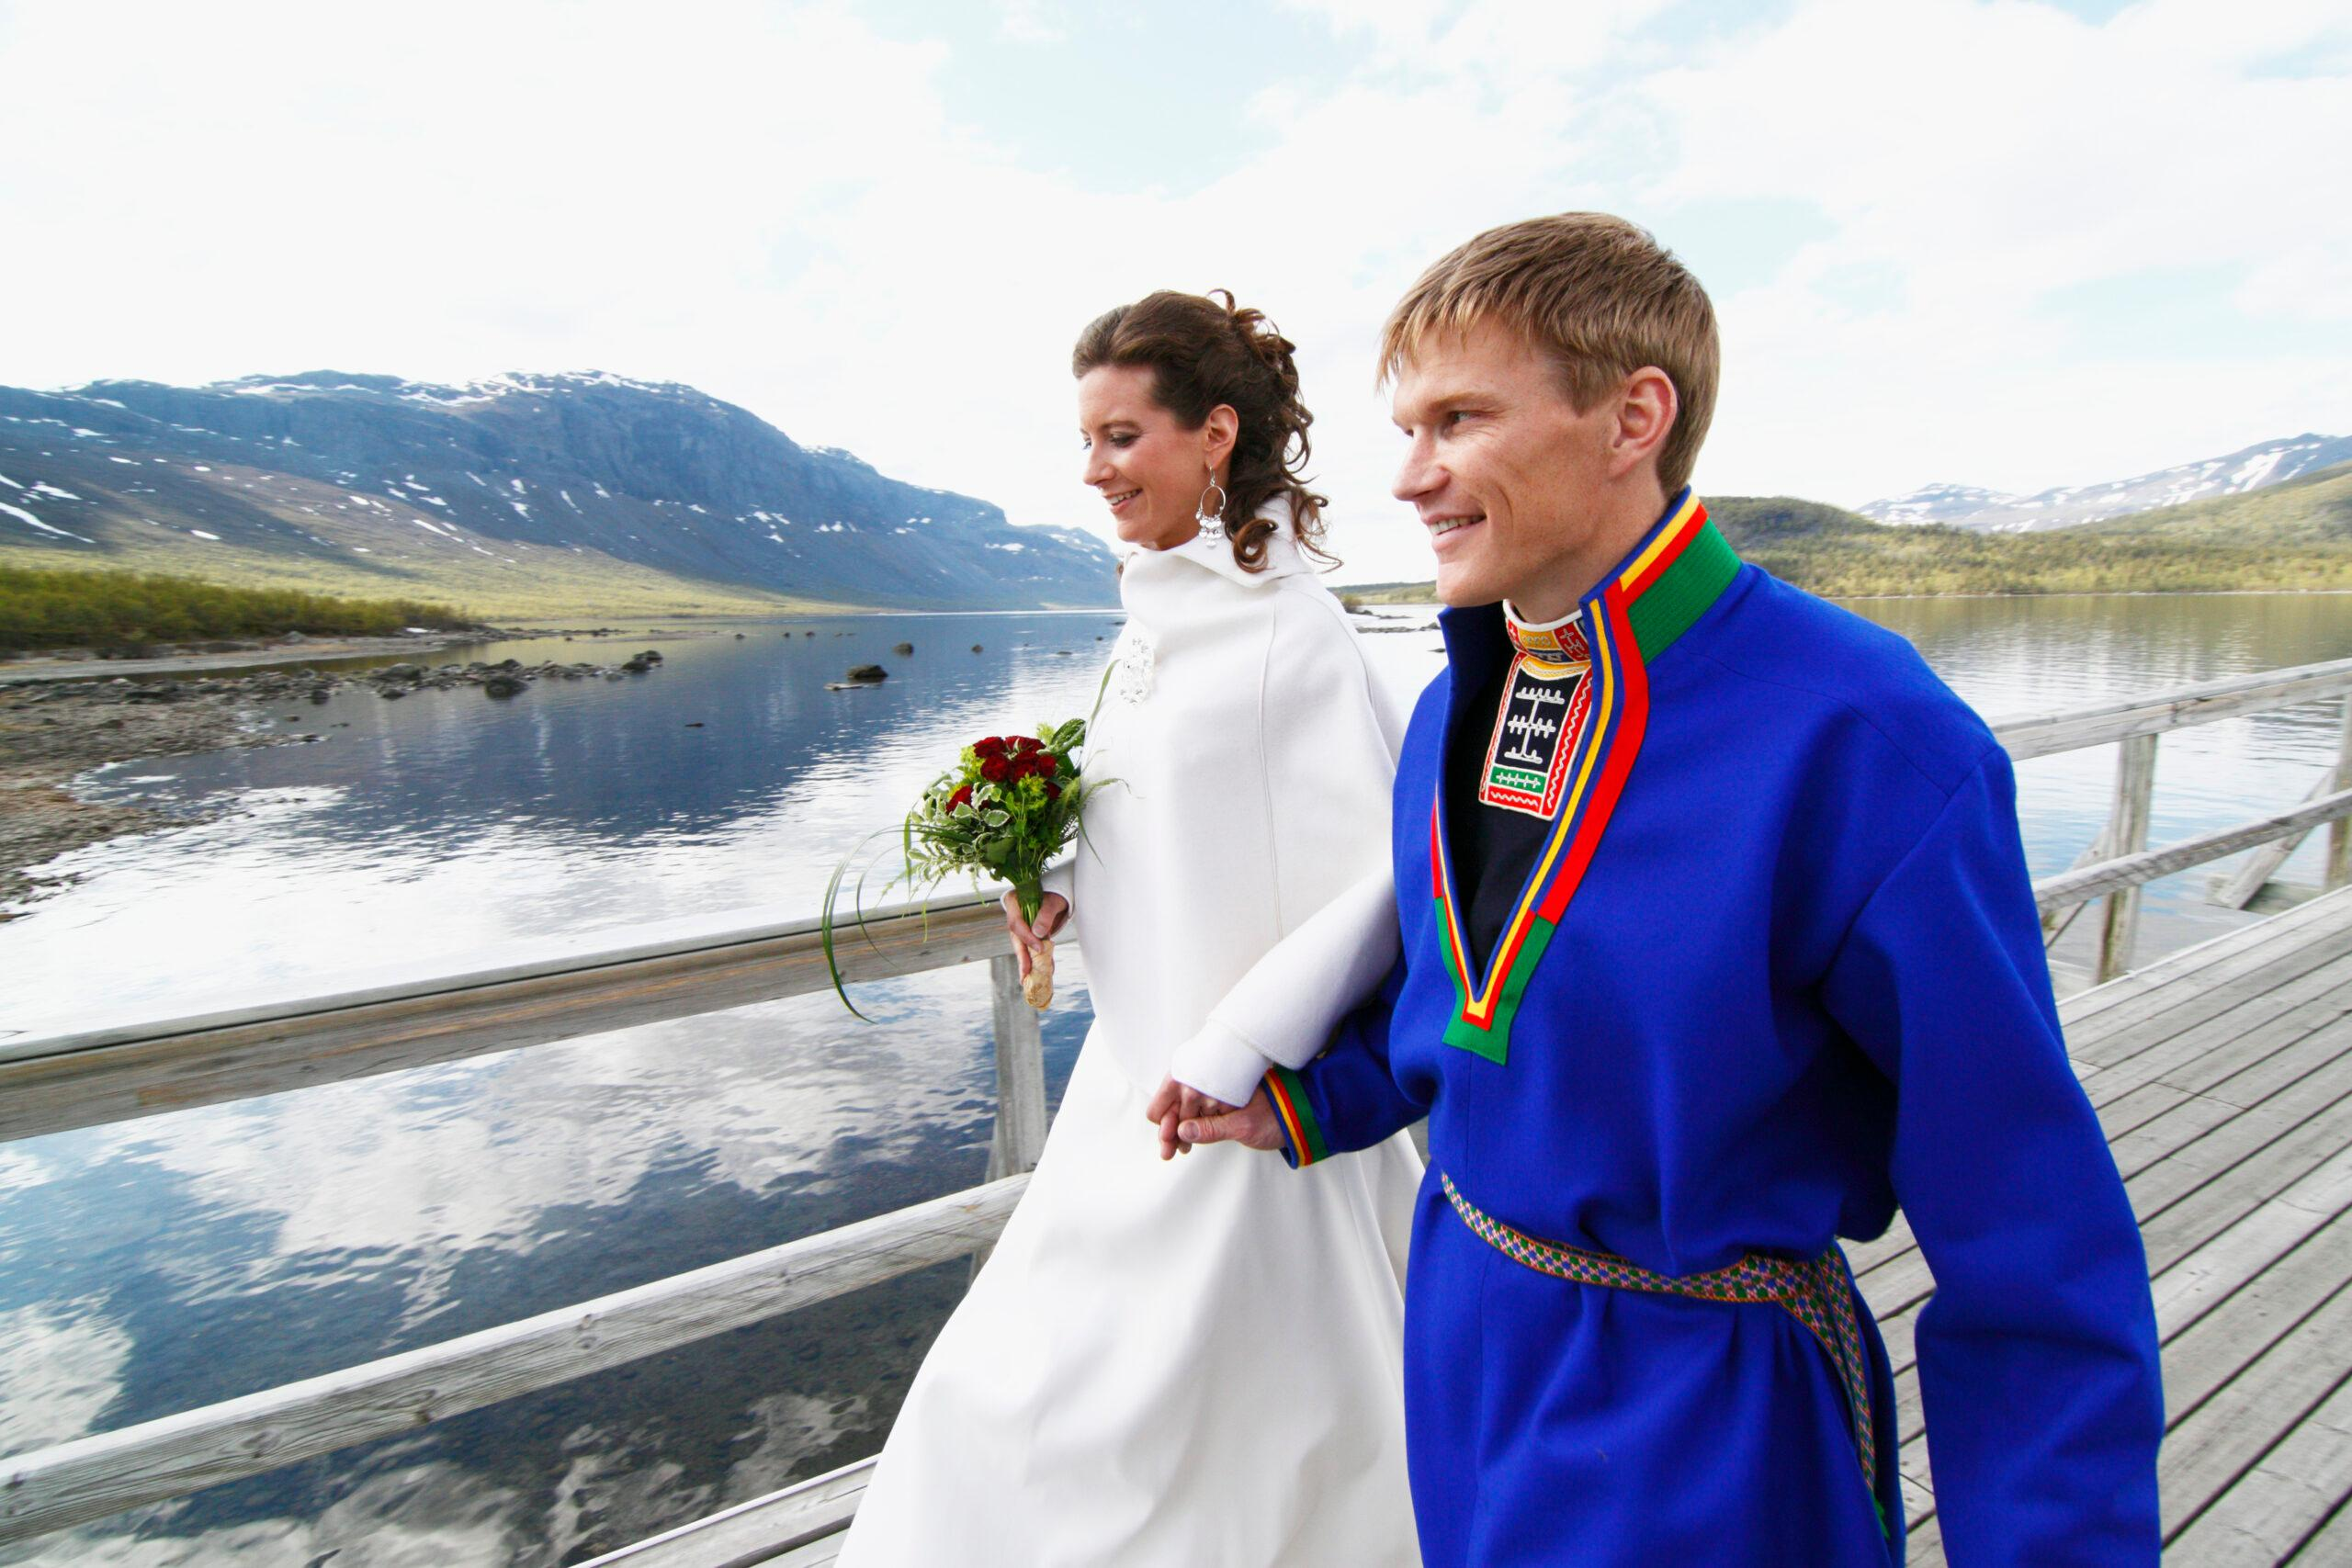 A newlywed couple - the woman in a white dress, the man in a traditional sami costume - walking across a bridge. Mountains in the background.